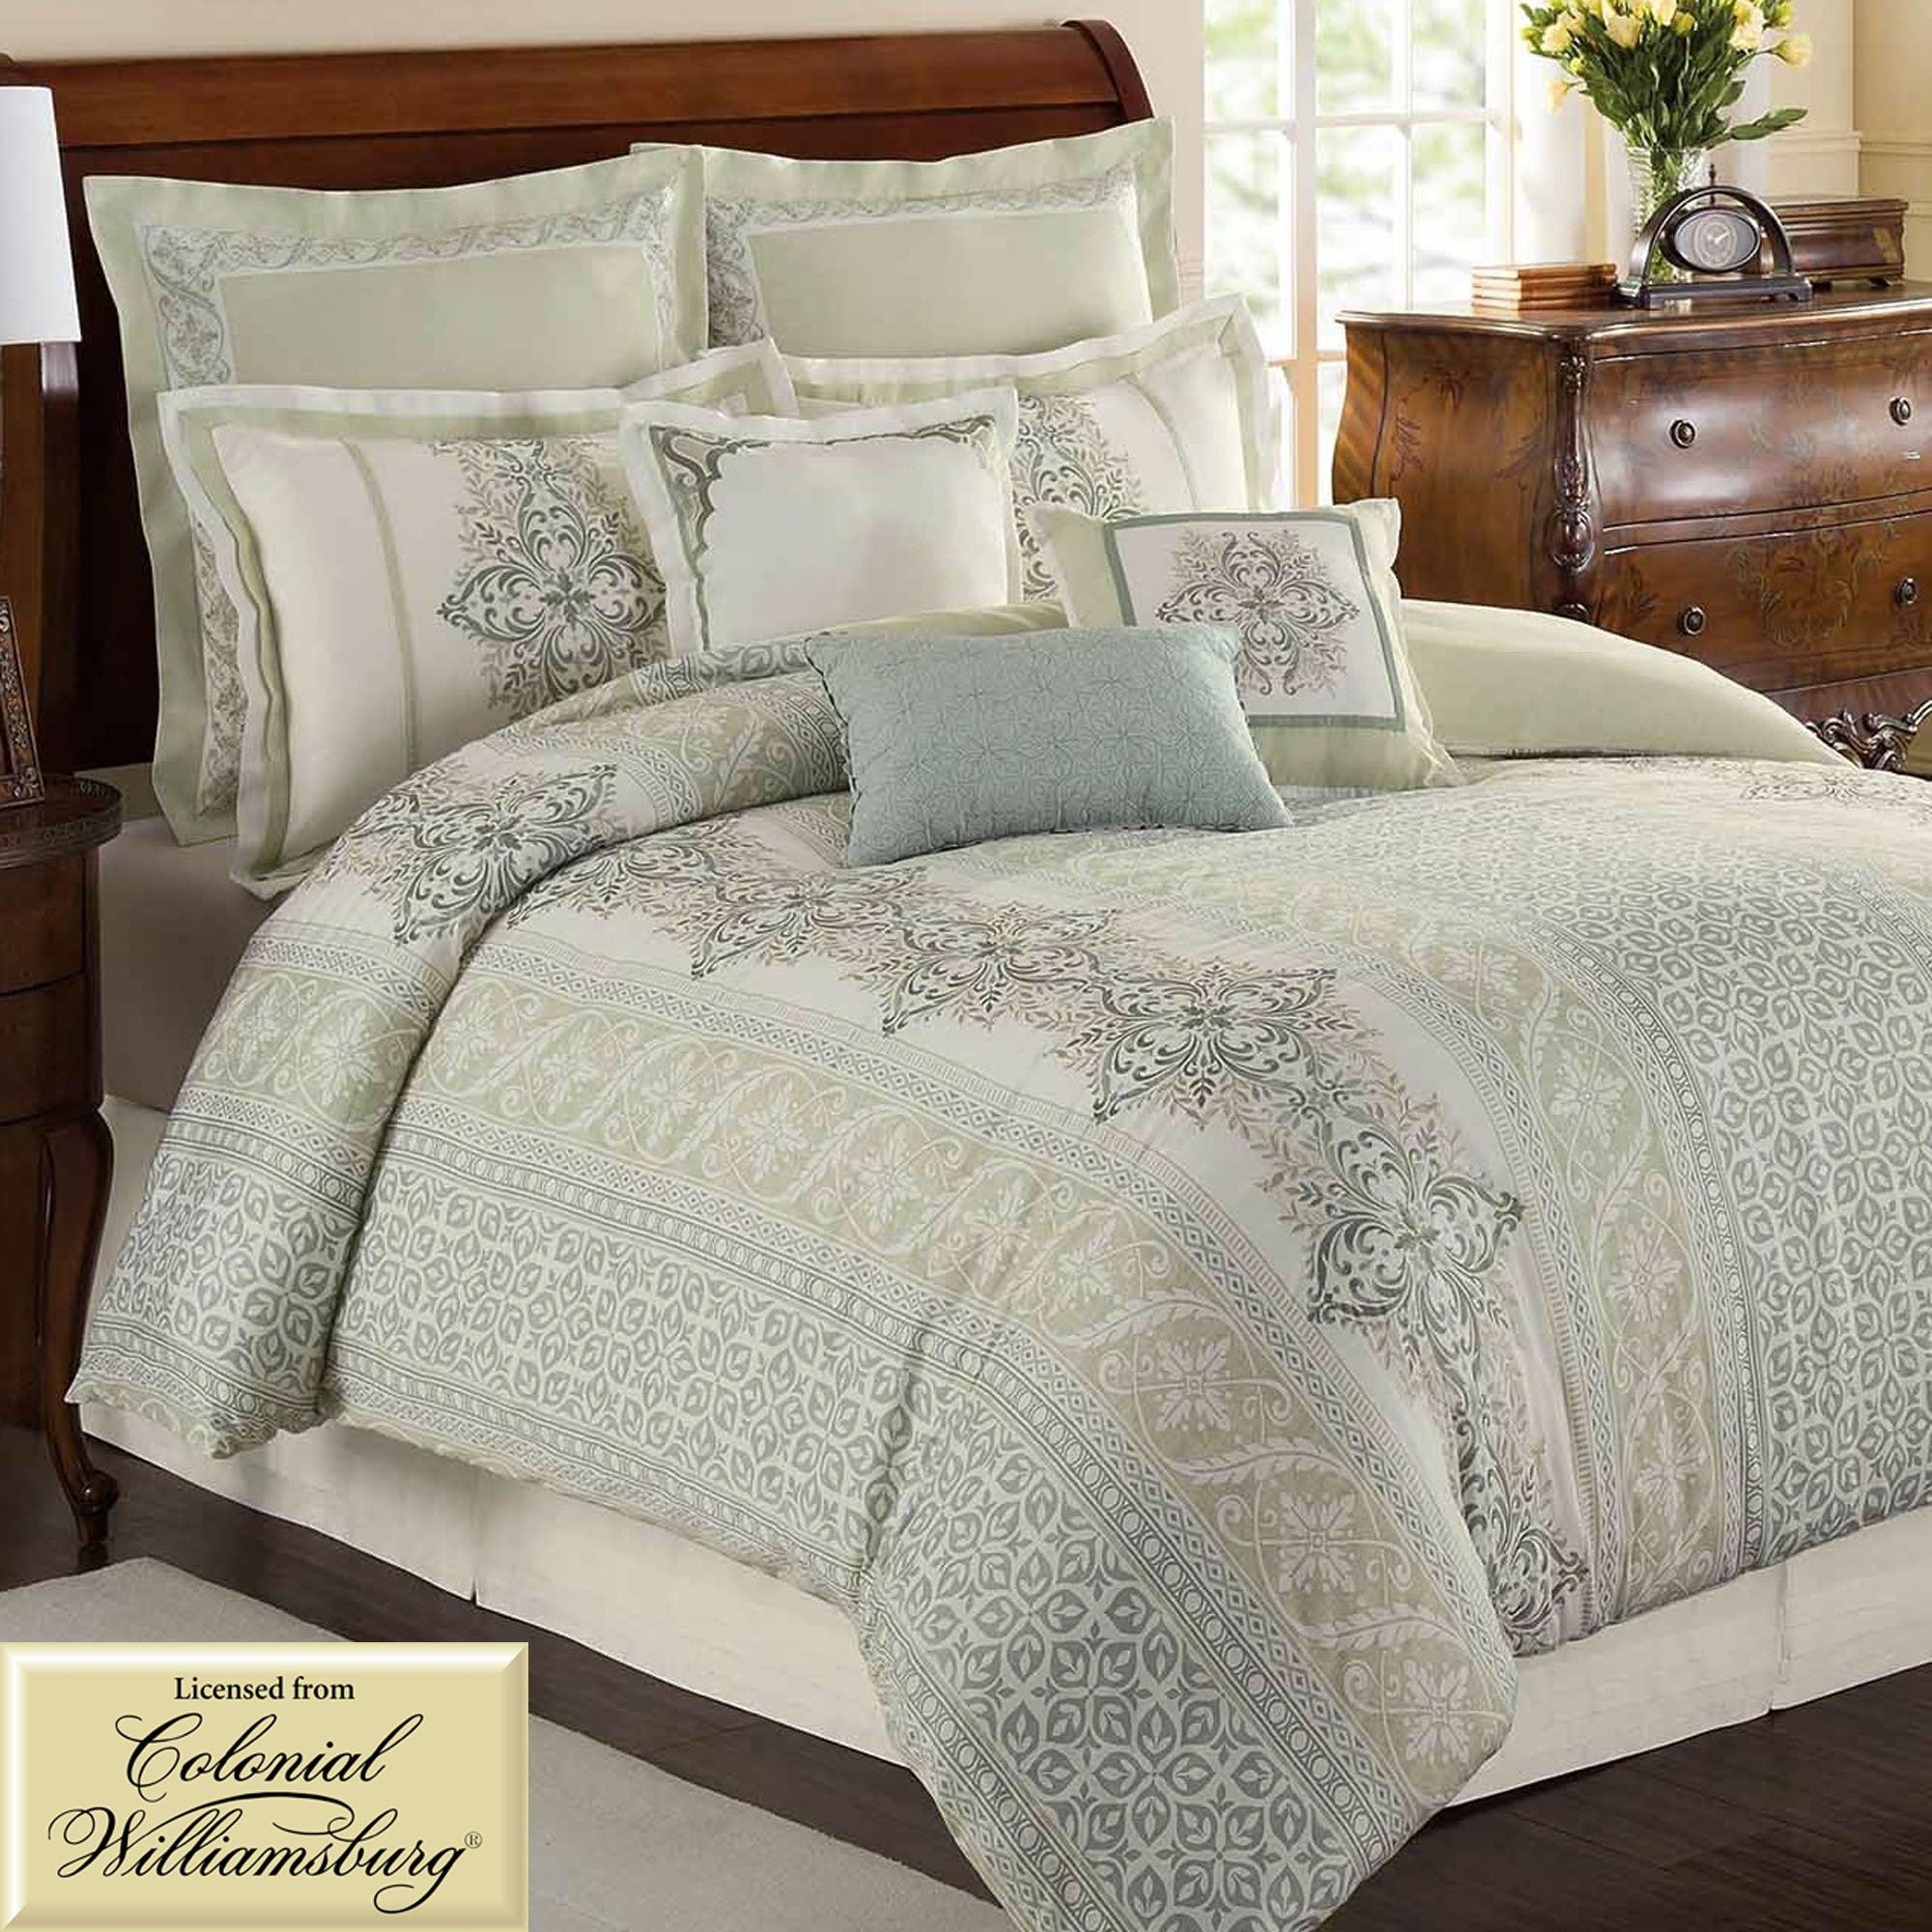 image hotel sheets ss collection prod cappuccino blog linens comforter bedding pacific differences coast bestfit